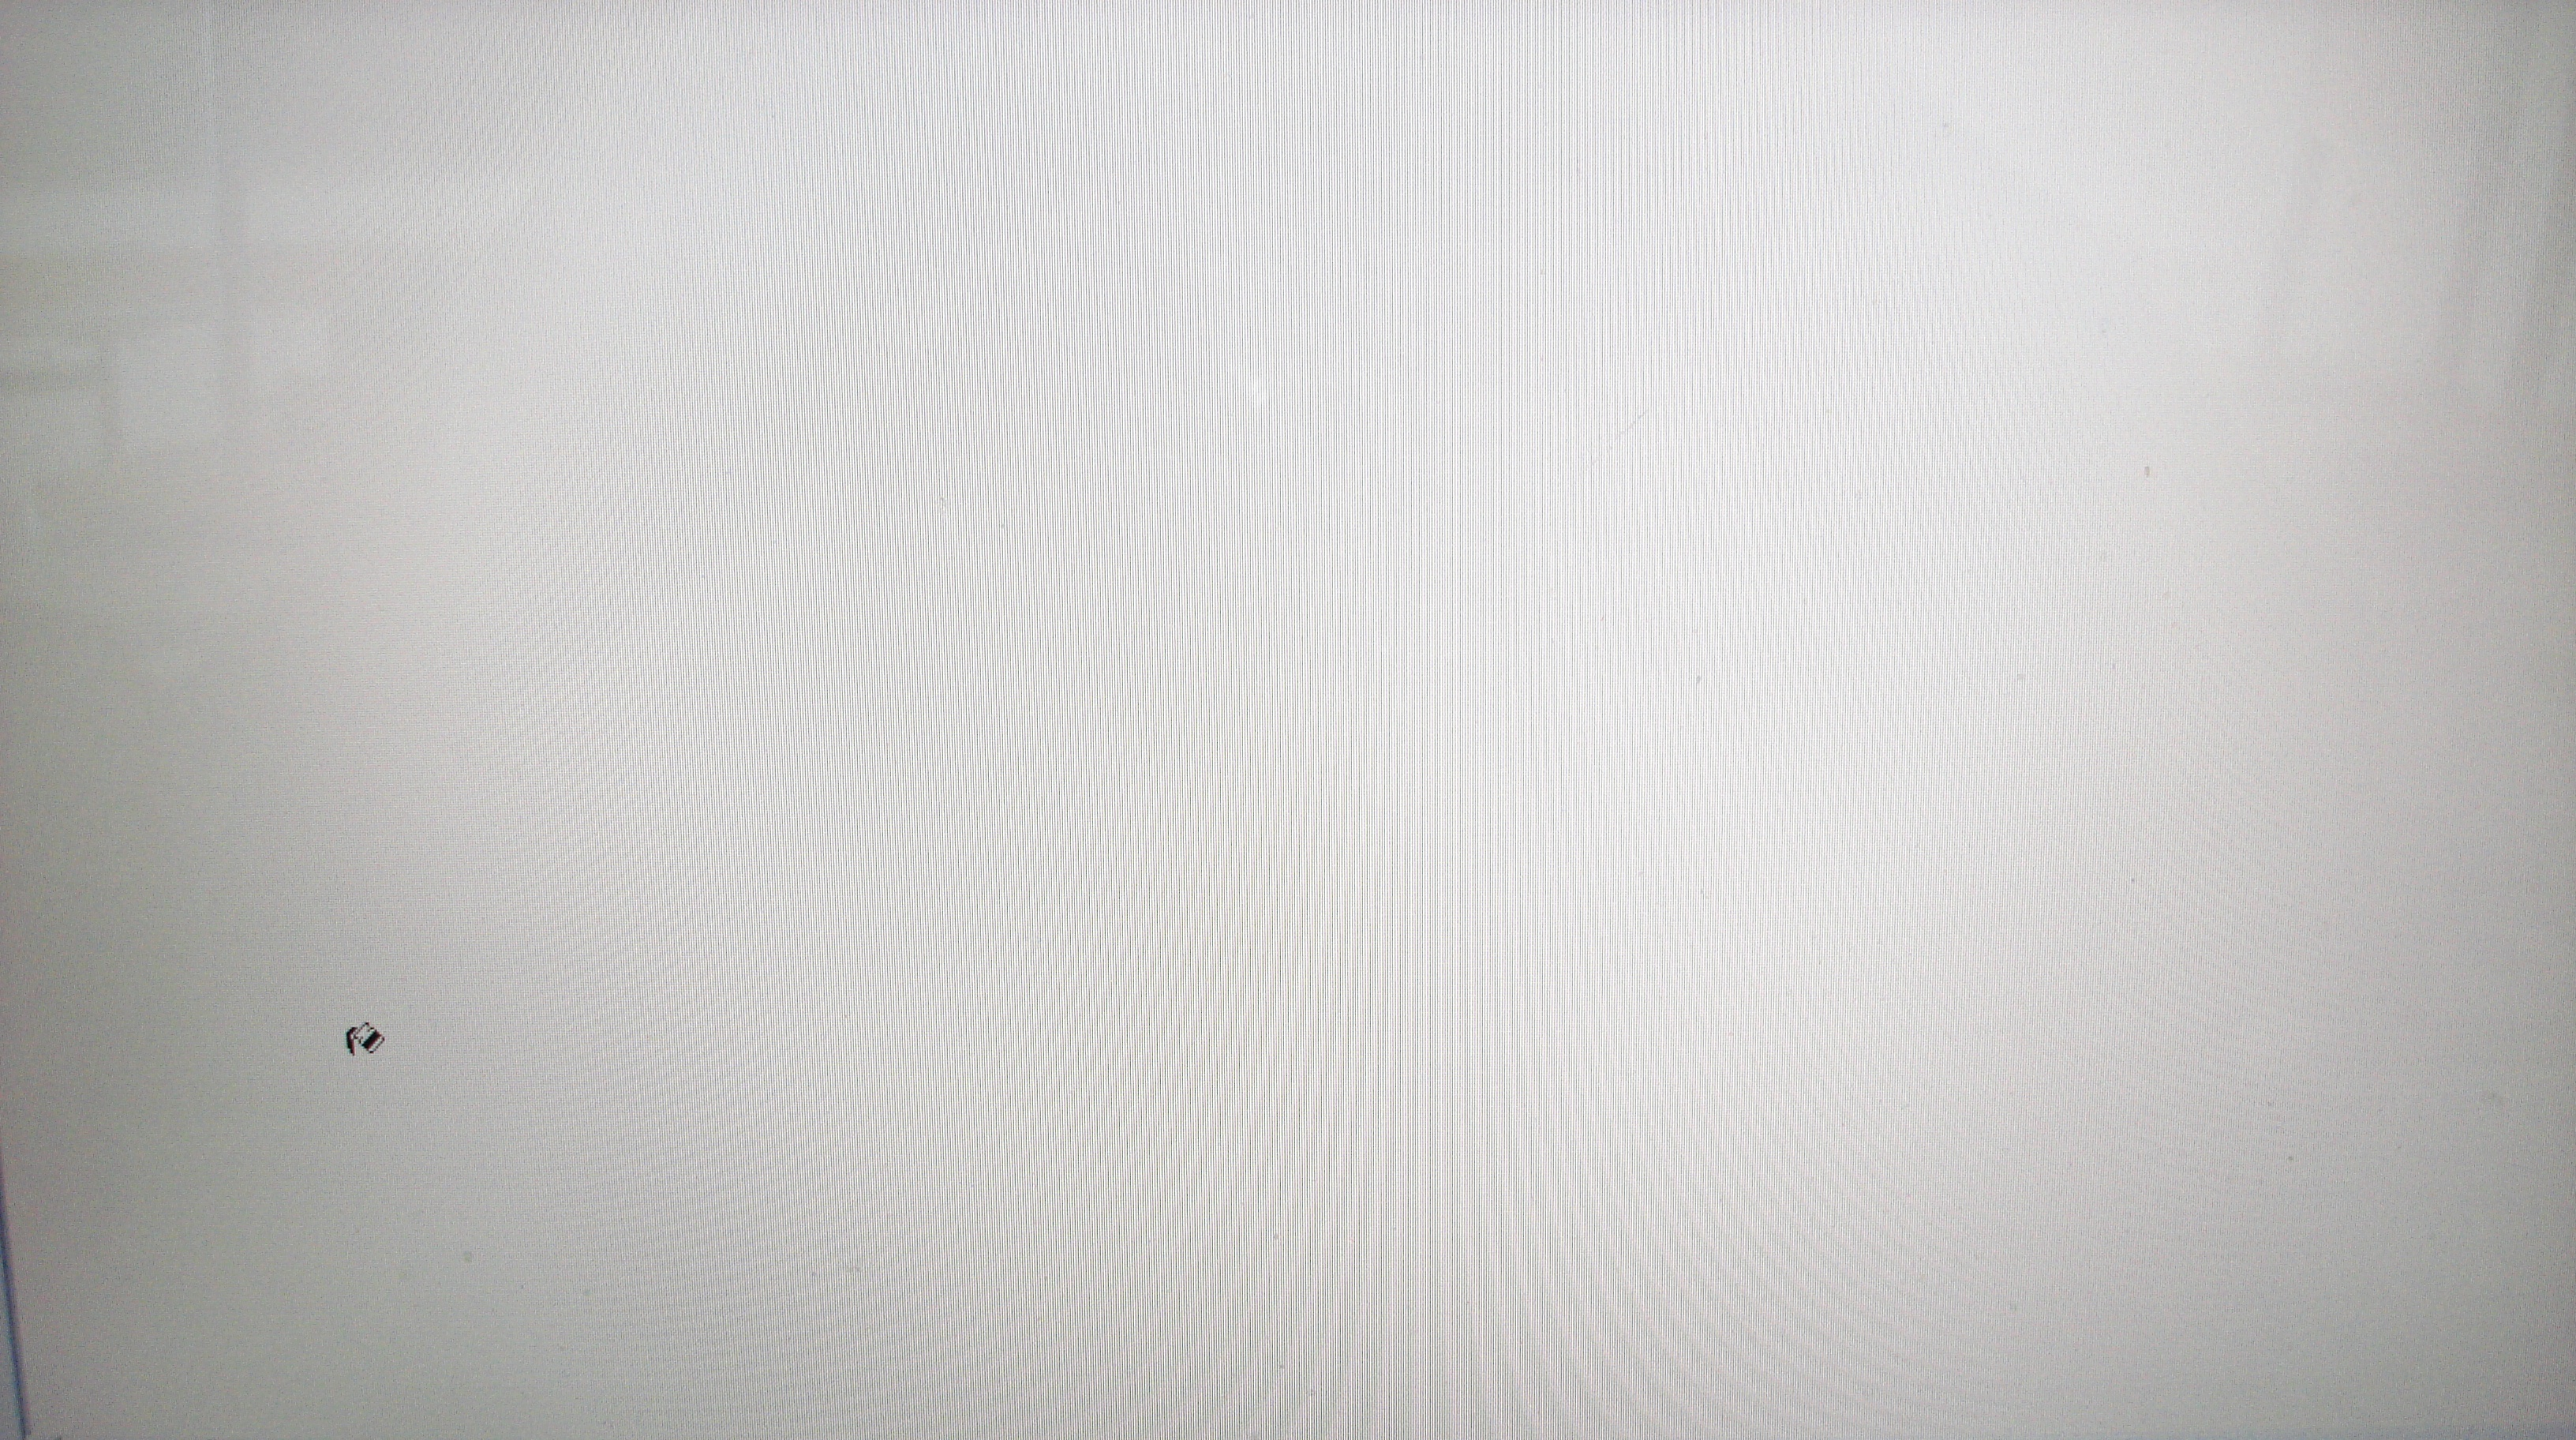 a white screen background